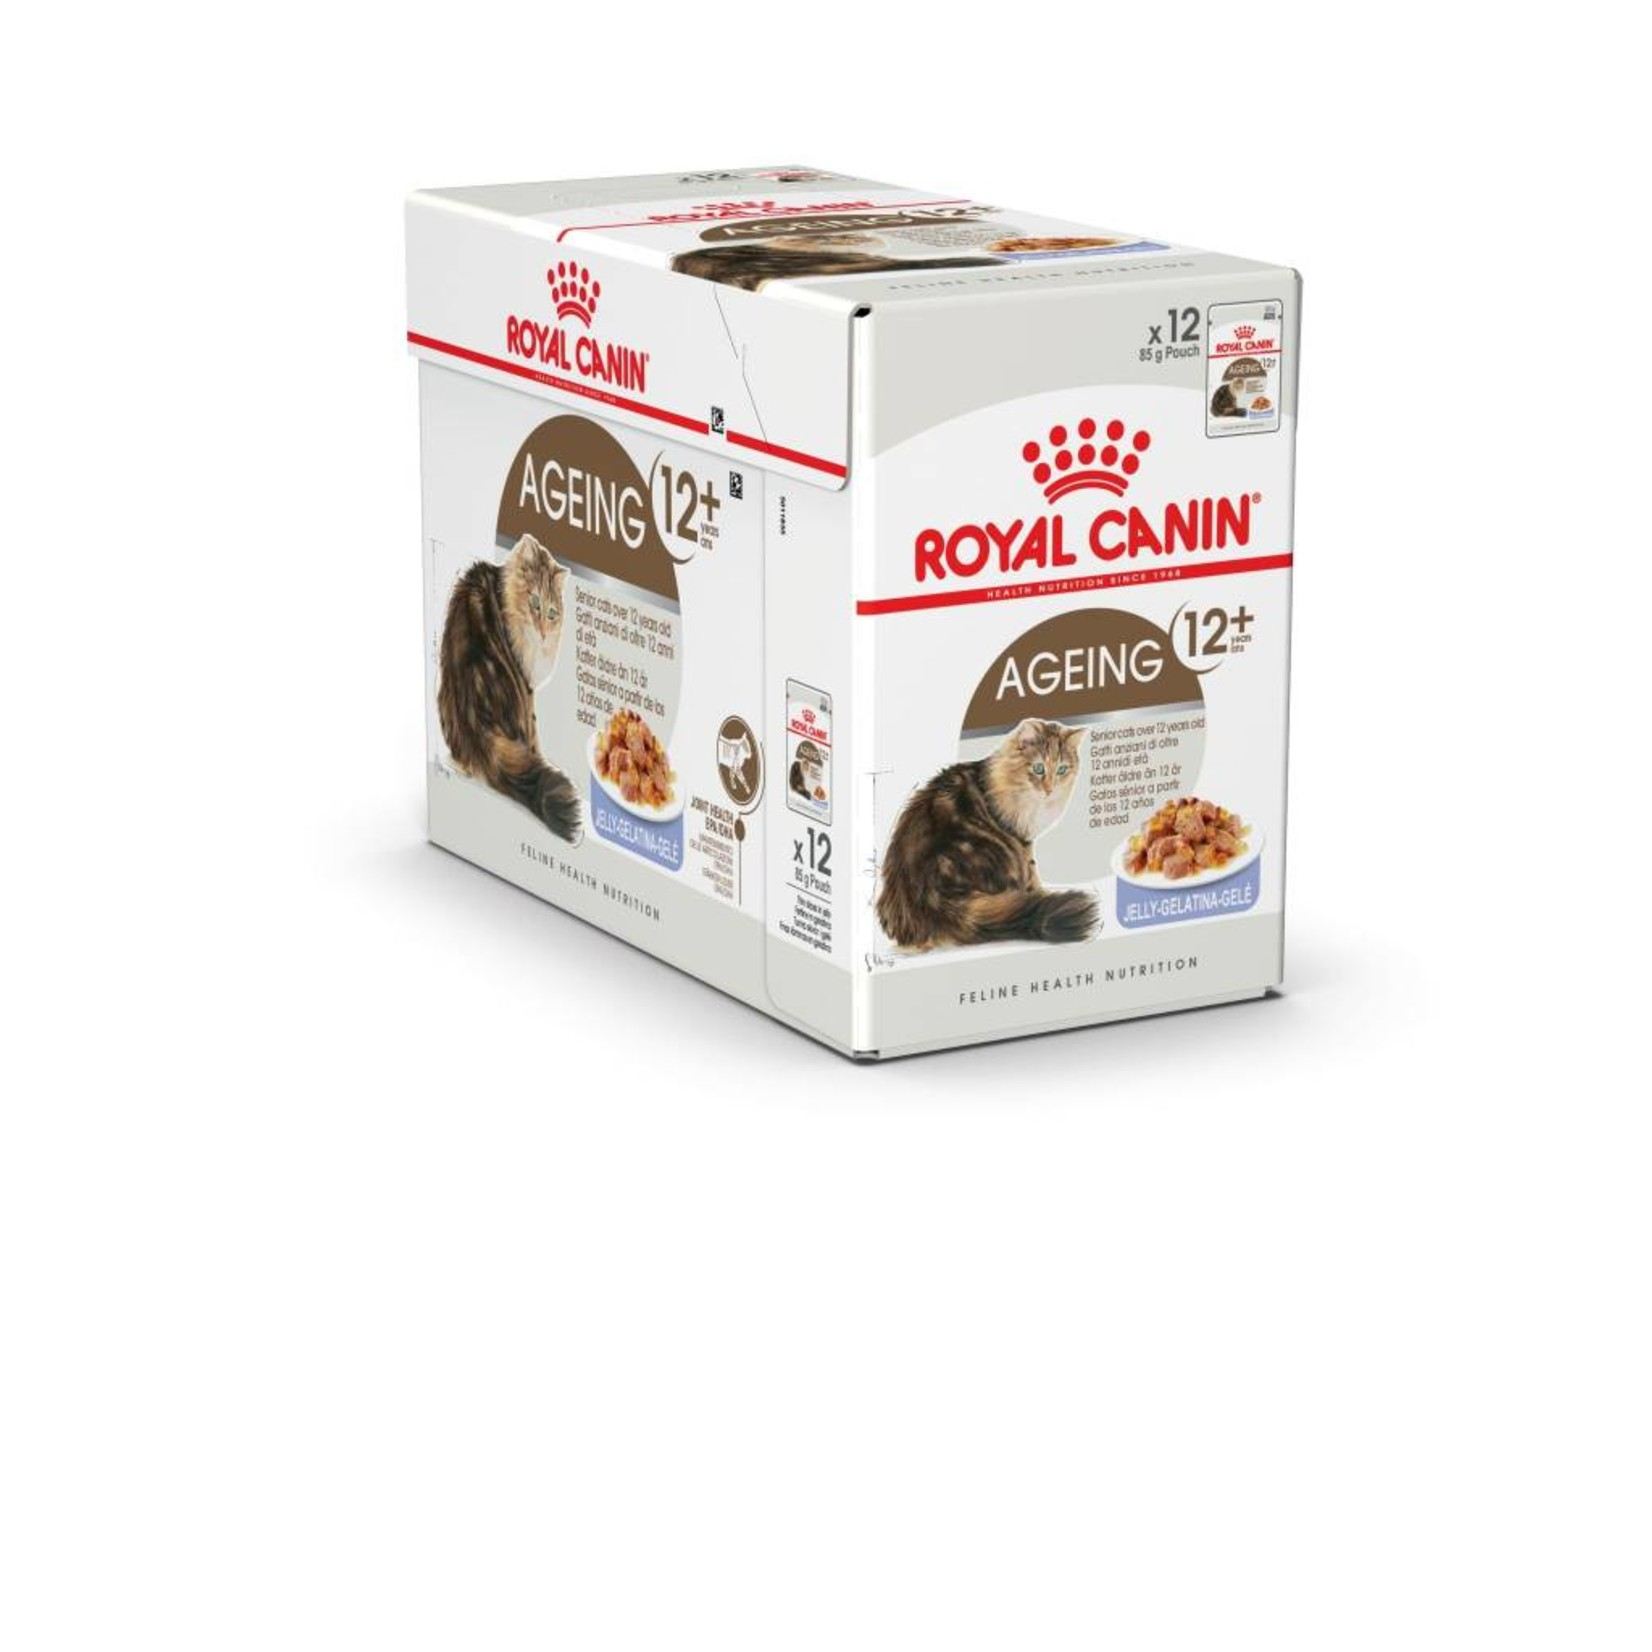 Royal Canin Ageing 12+ Senior Cat Wet Food Pouch with Jelly, 85g, box of 12